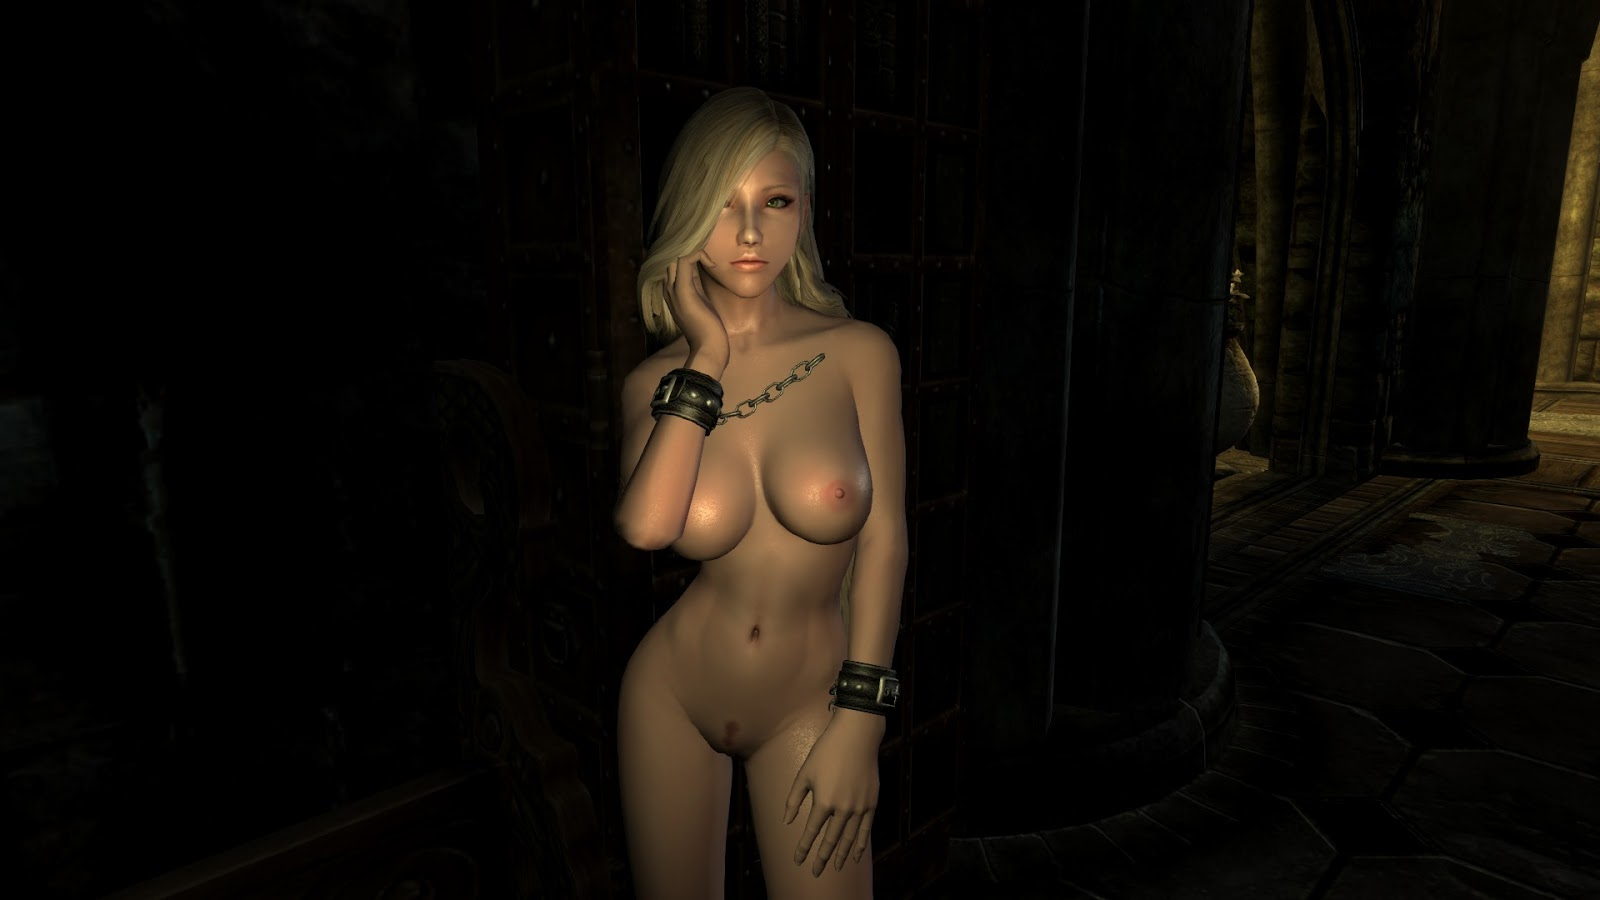 Nude patch in skyrim erotic film